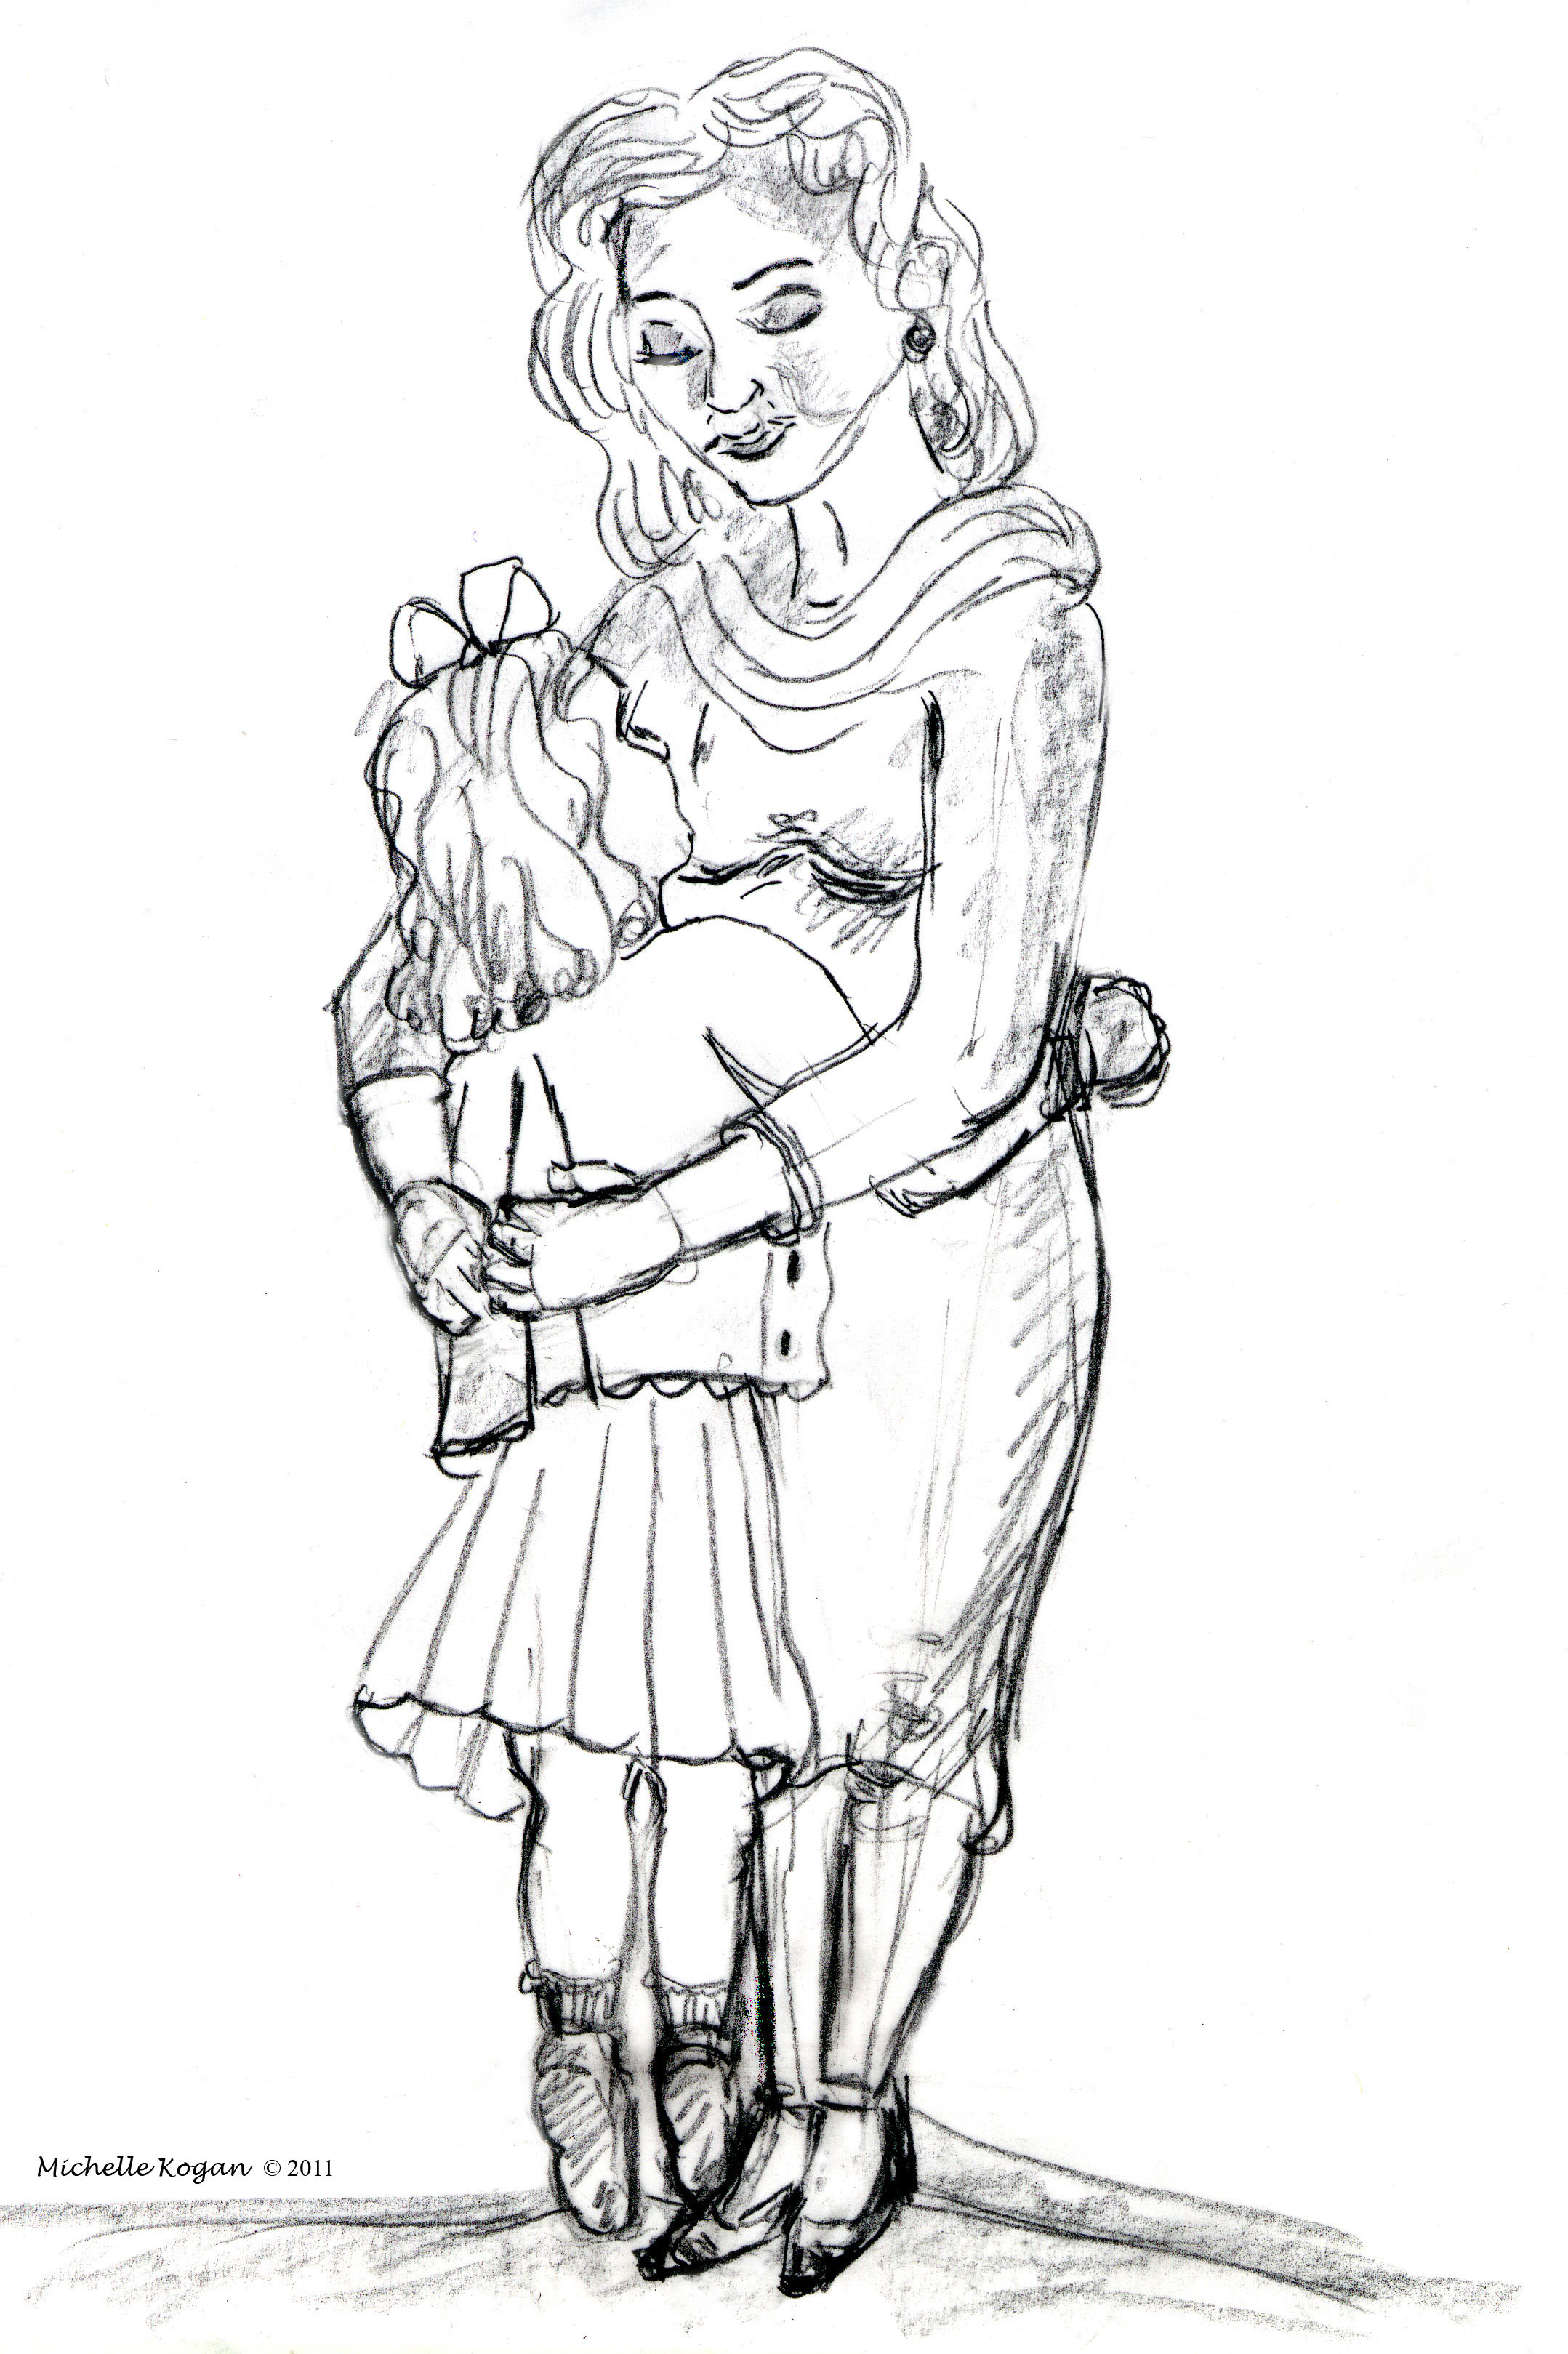 Quick Sketch for Mother's Day: Mothers & Daughters